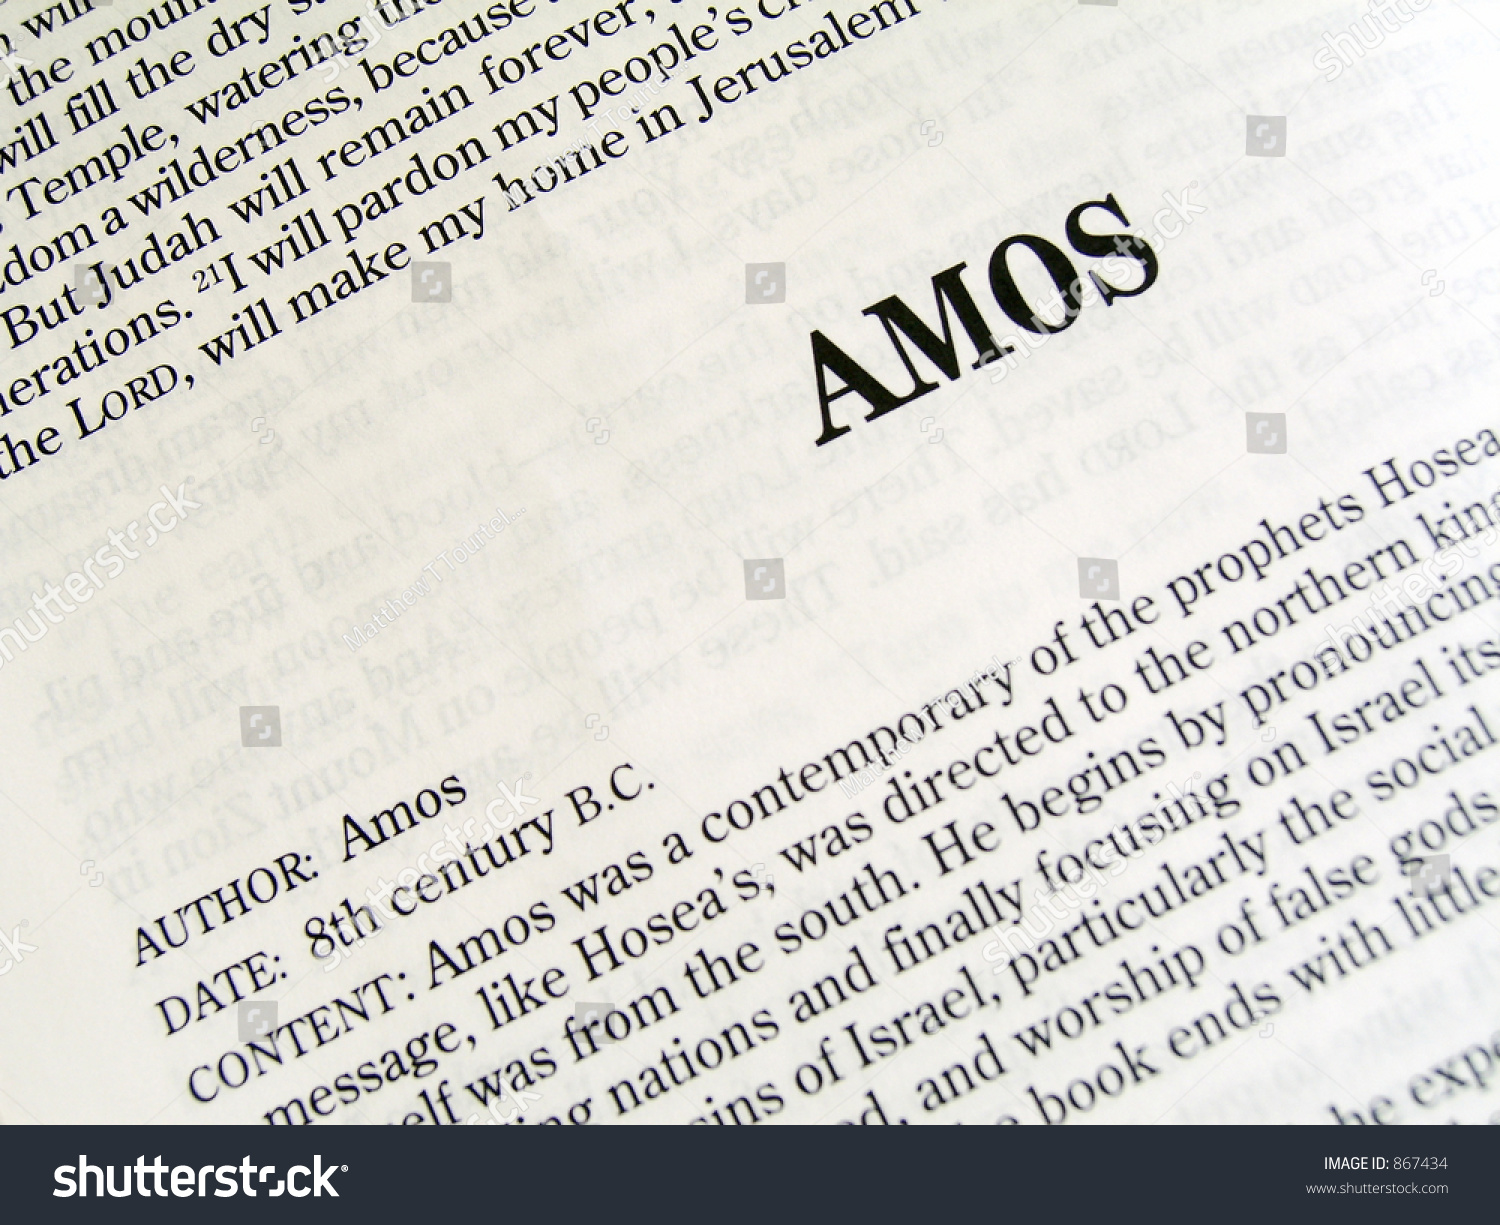 """the book of amos Previous book previous chapter read the full chapter next chapter next book 1 the words of amos, one of the shepherds of tekoa—the vision he saw concerning israel two years before the earthquake, when uzziah was king of judah and jeroboam son of jehoash a was king of israel 2 he said: """"the lord."""